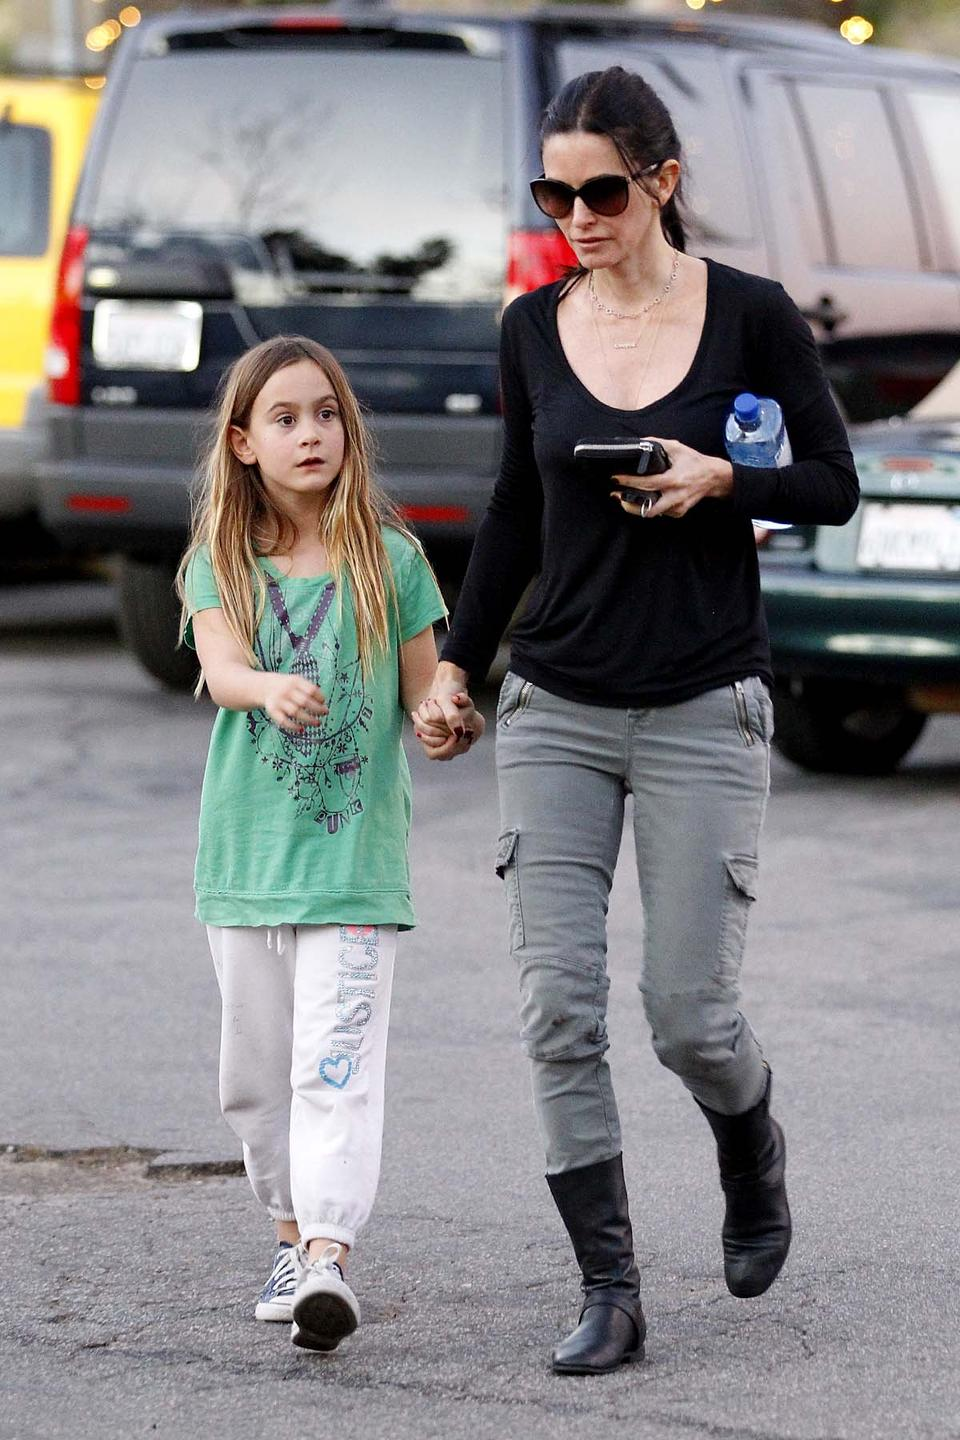 Courtney Cox holding her daughter Coco Arquette's hand while they walk